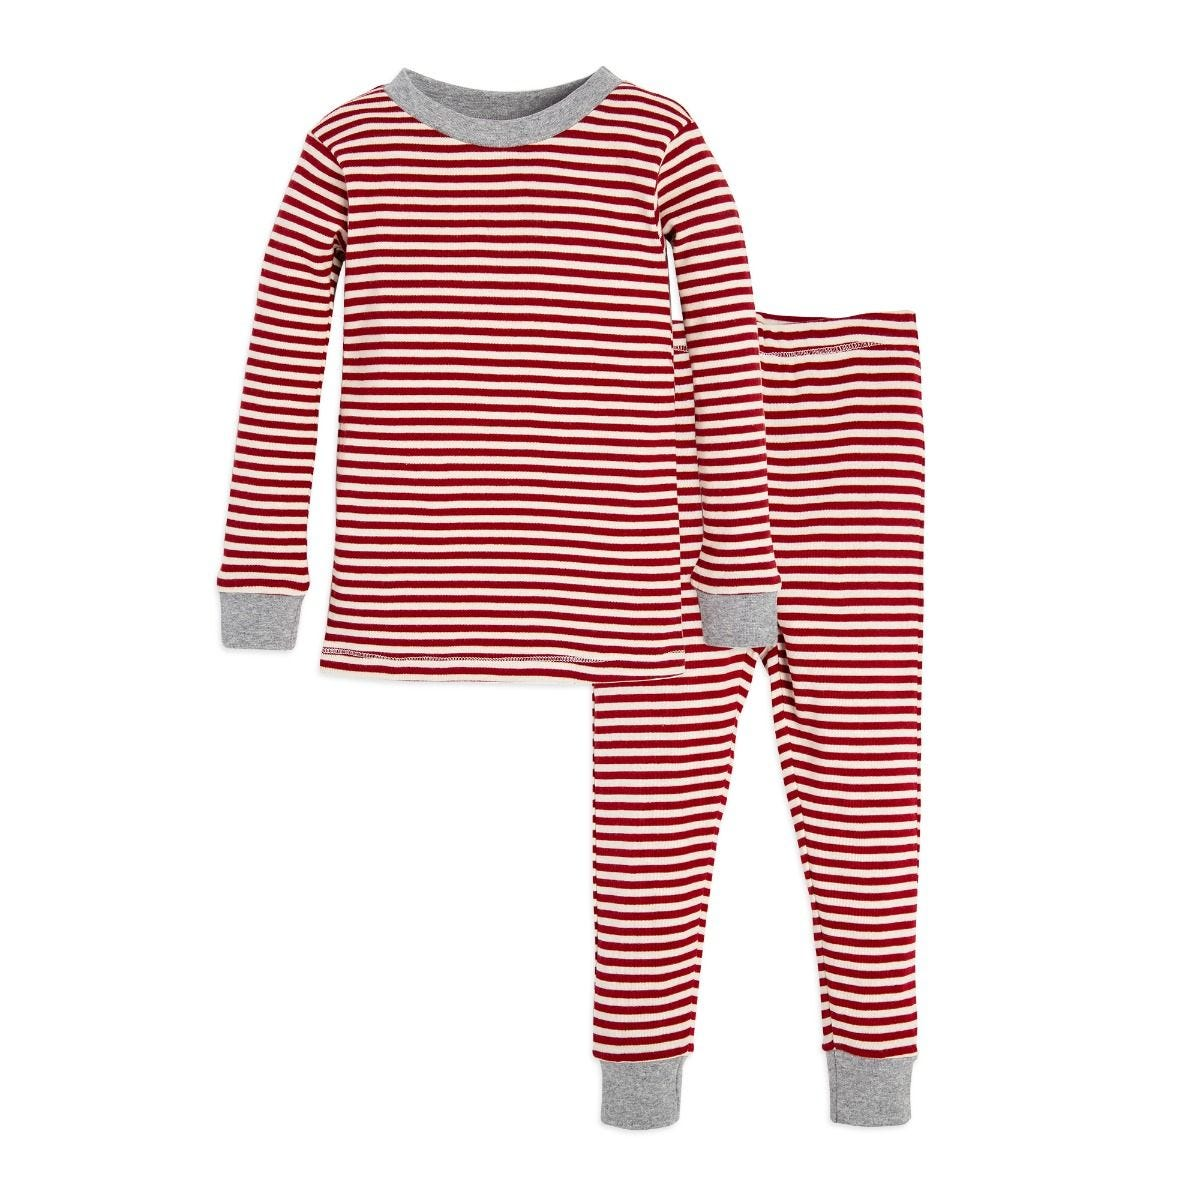 Candy Cane Stripe Organic Toddler Holiday Matching Pajamas c8359b946